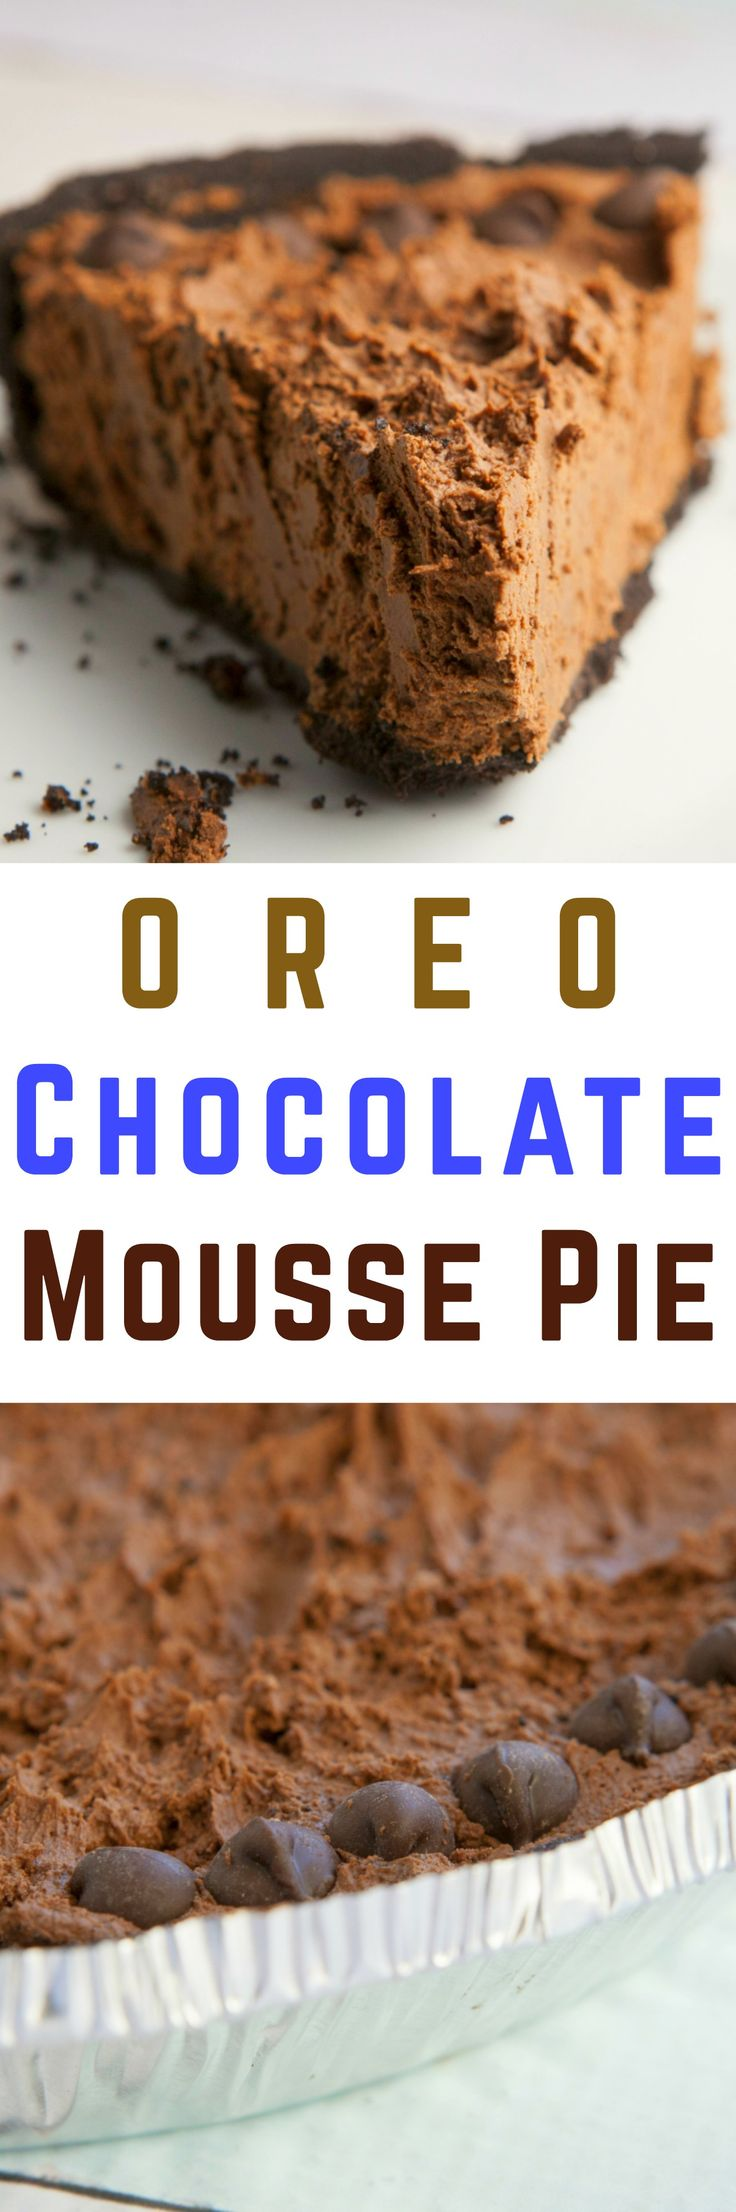 Delicious dessert recipe for Oreo Chocolate Mousse Pie.  This is a rich double chocolate no bake pie made with Cool Whip and a Oreo crust.